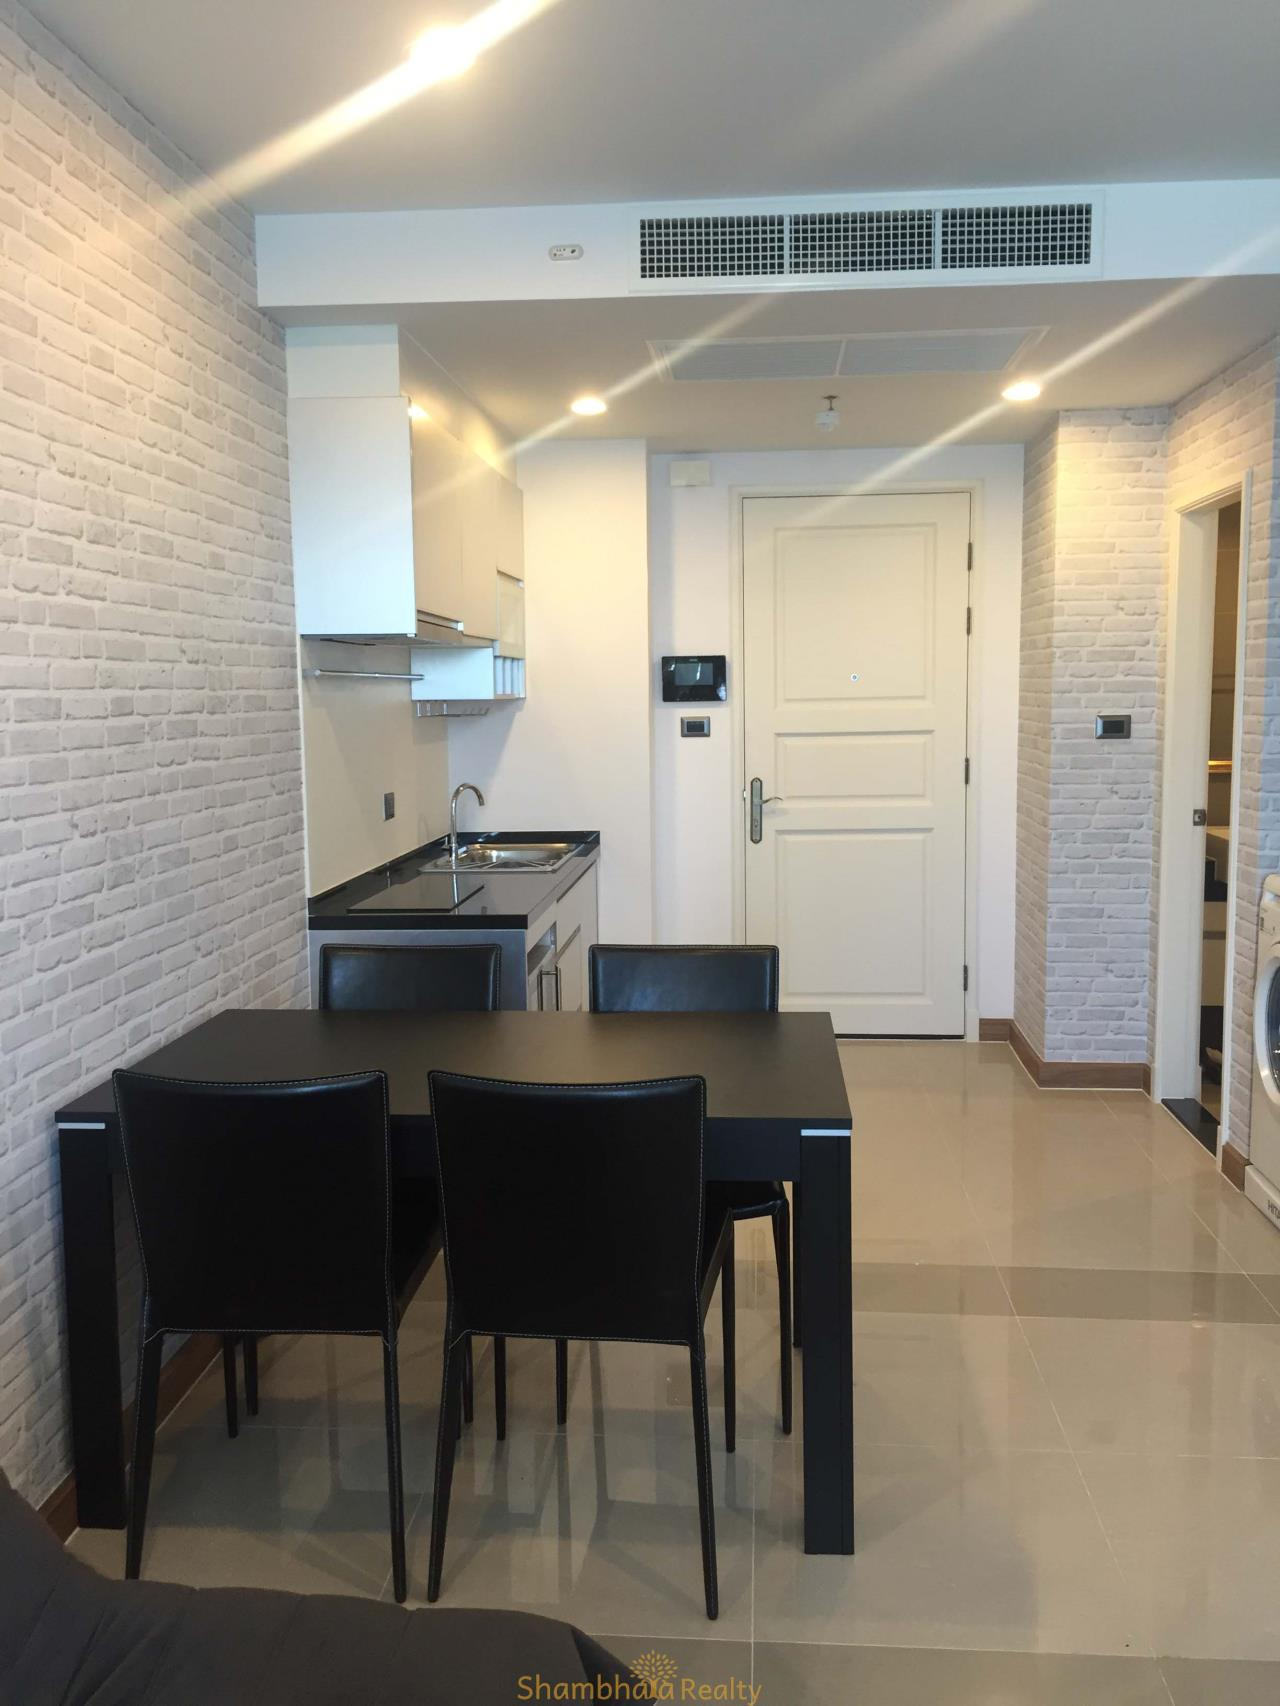 Shambhala Realty Agency's Supalai Wellington Condominium for Rent in Thiam Ruam Mit 27 Rd, Huai Khwang 2